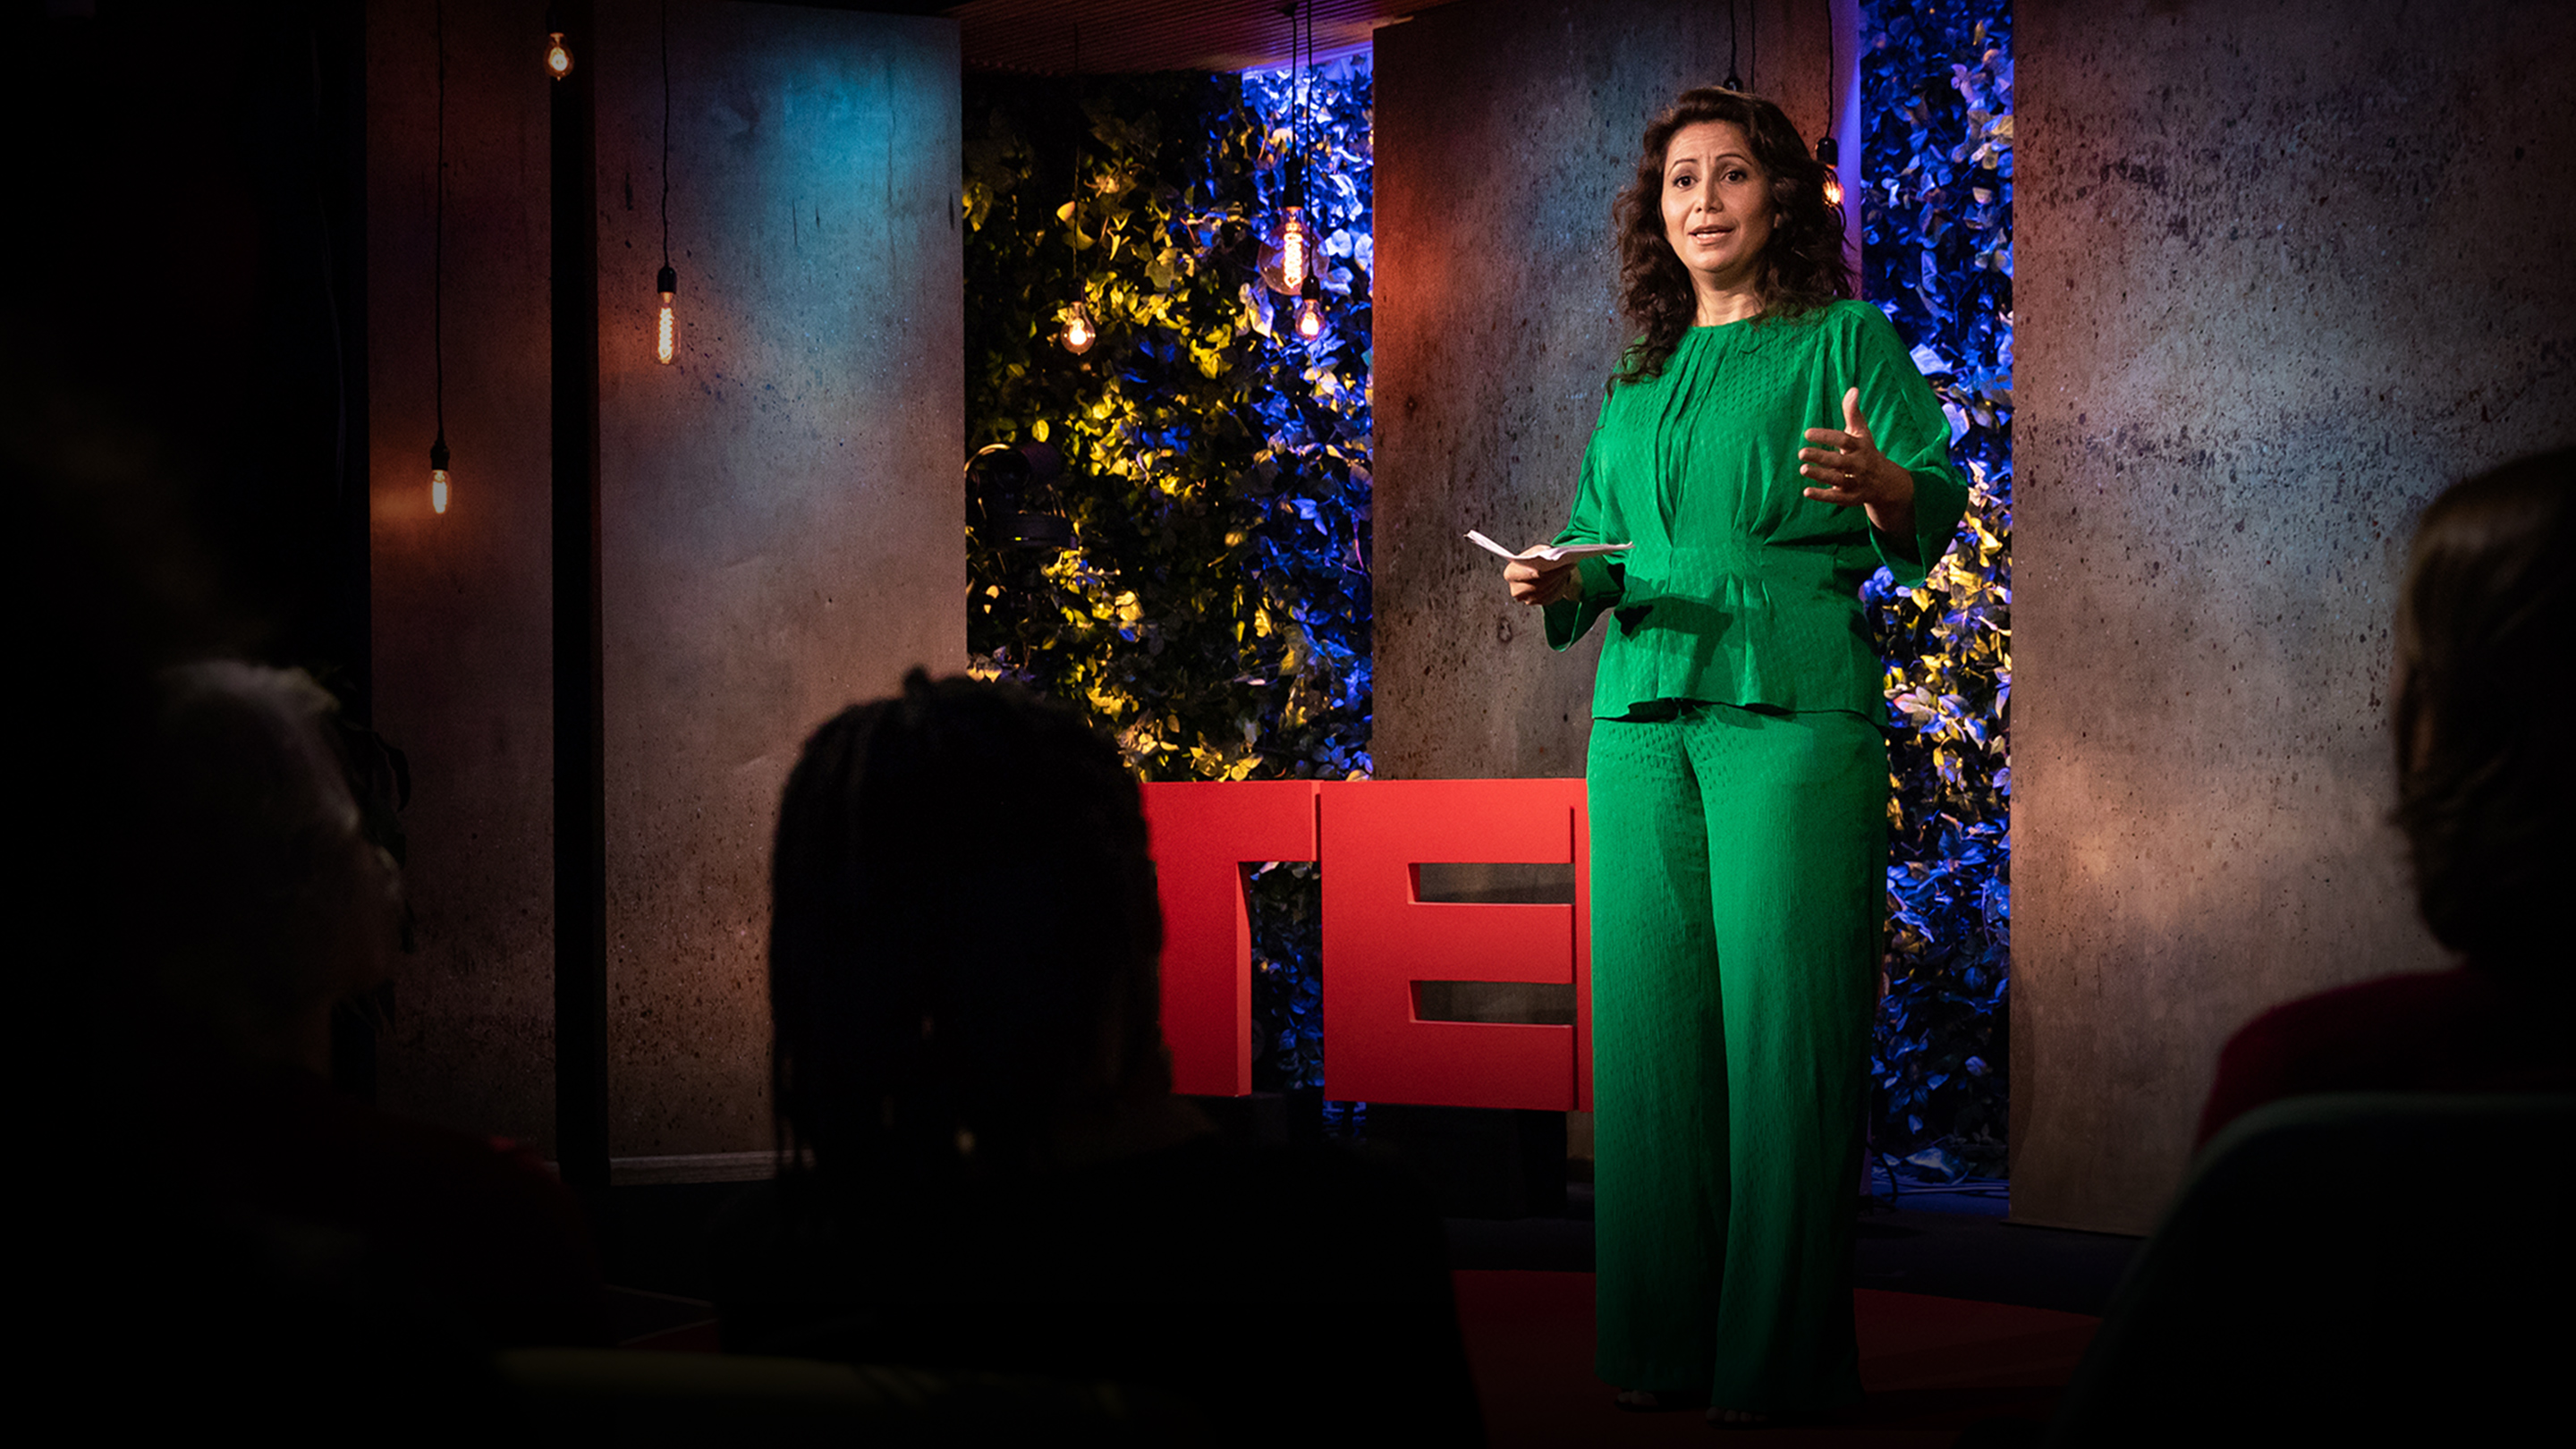 Julia Dhar: How to disagree productively and find common ground